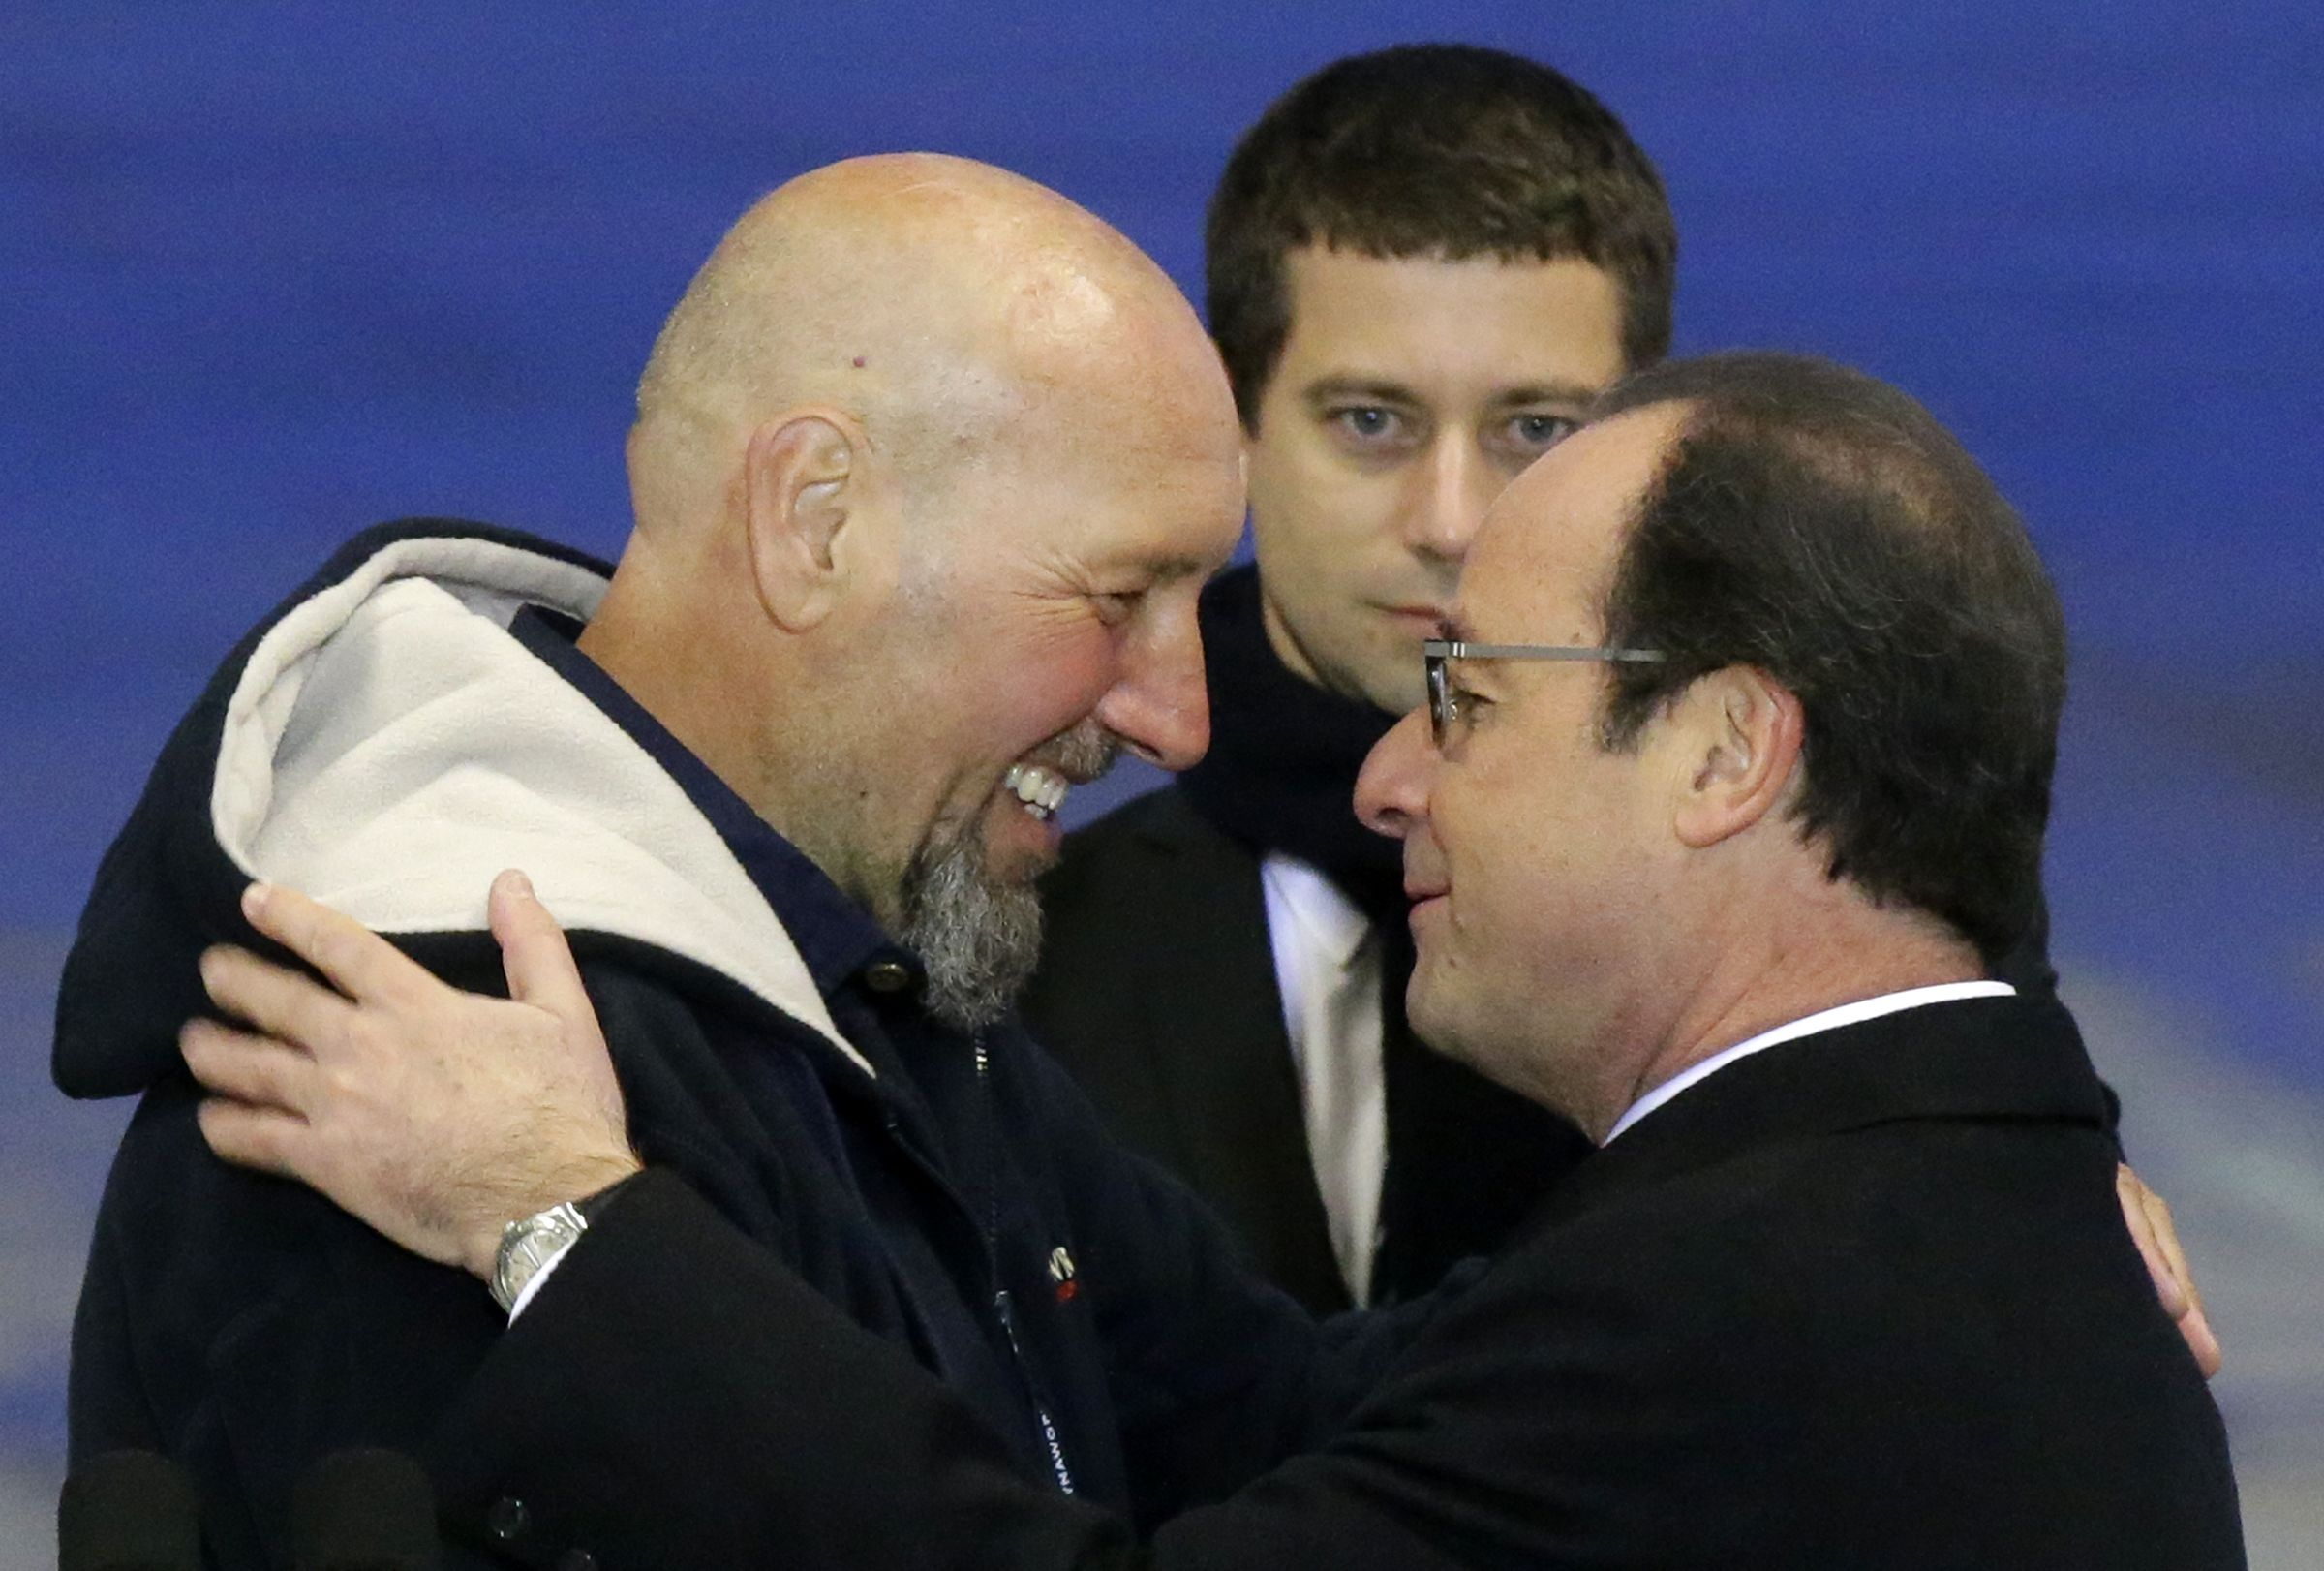 French hostage released